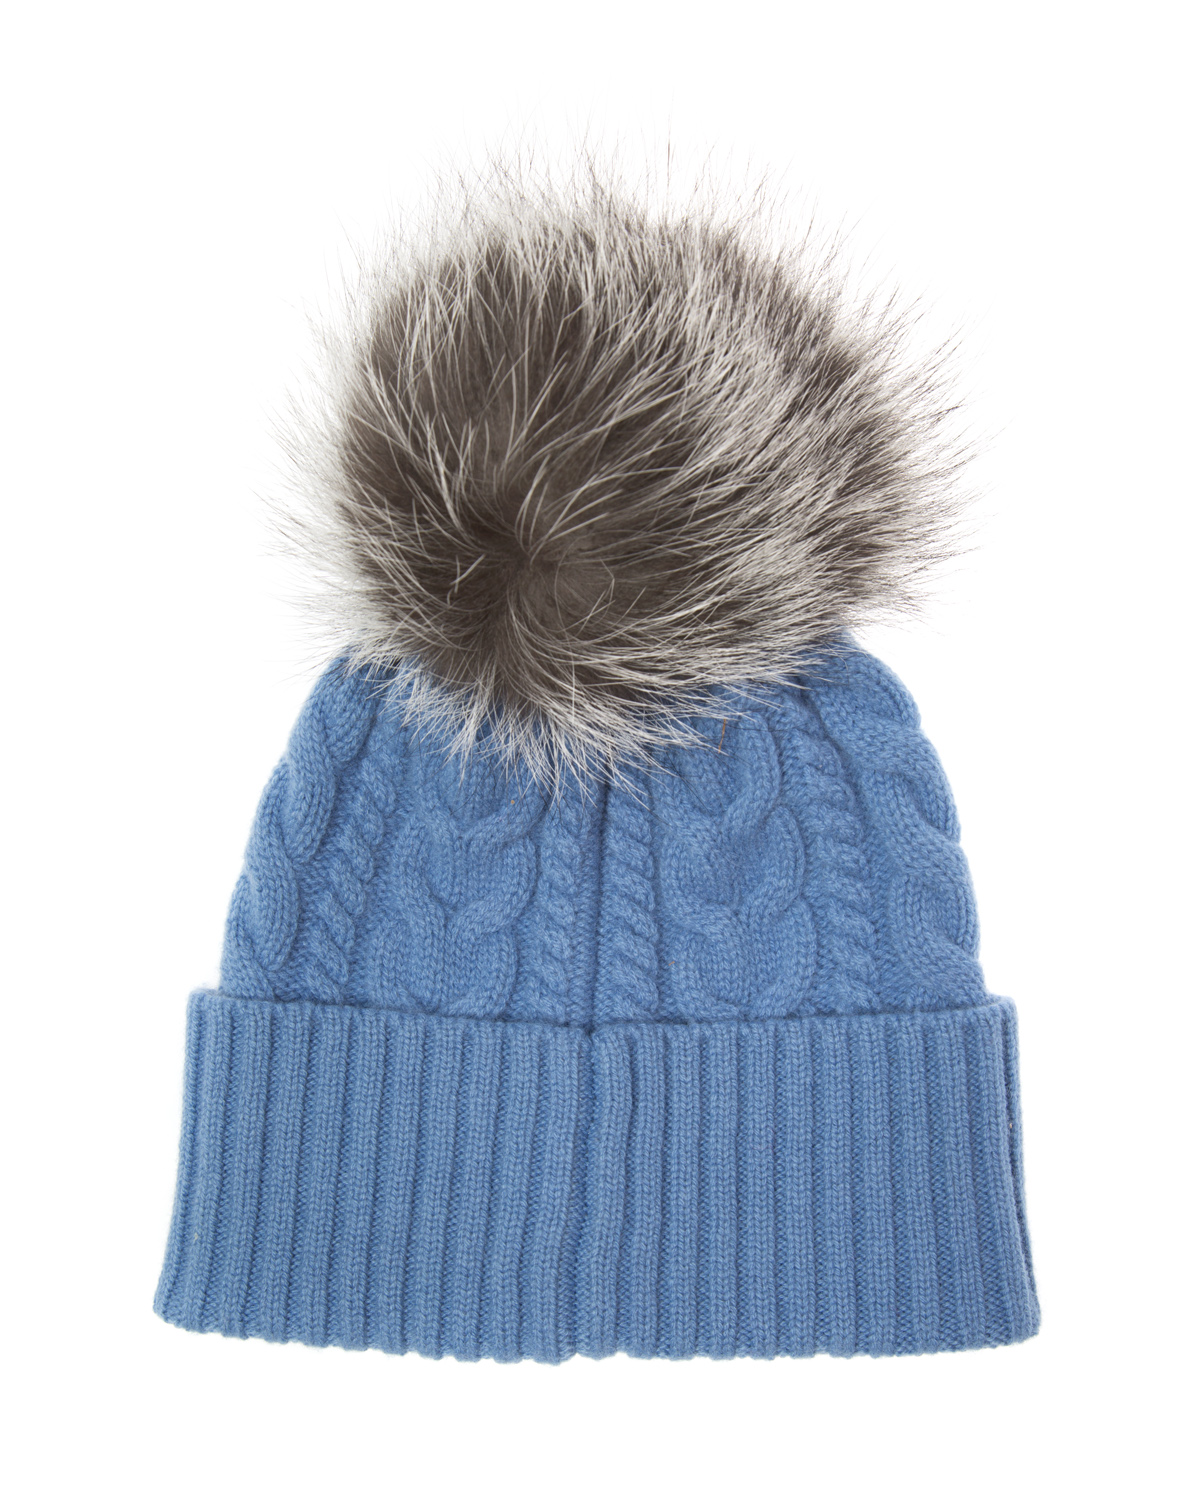 Moncler Women s Cable-Knit Beanie Hat Blue 85889 2 - Linea Fashion fa467277f3